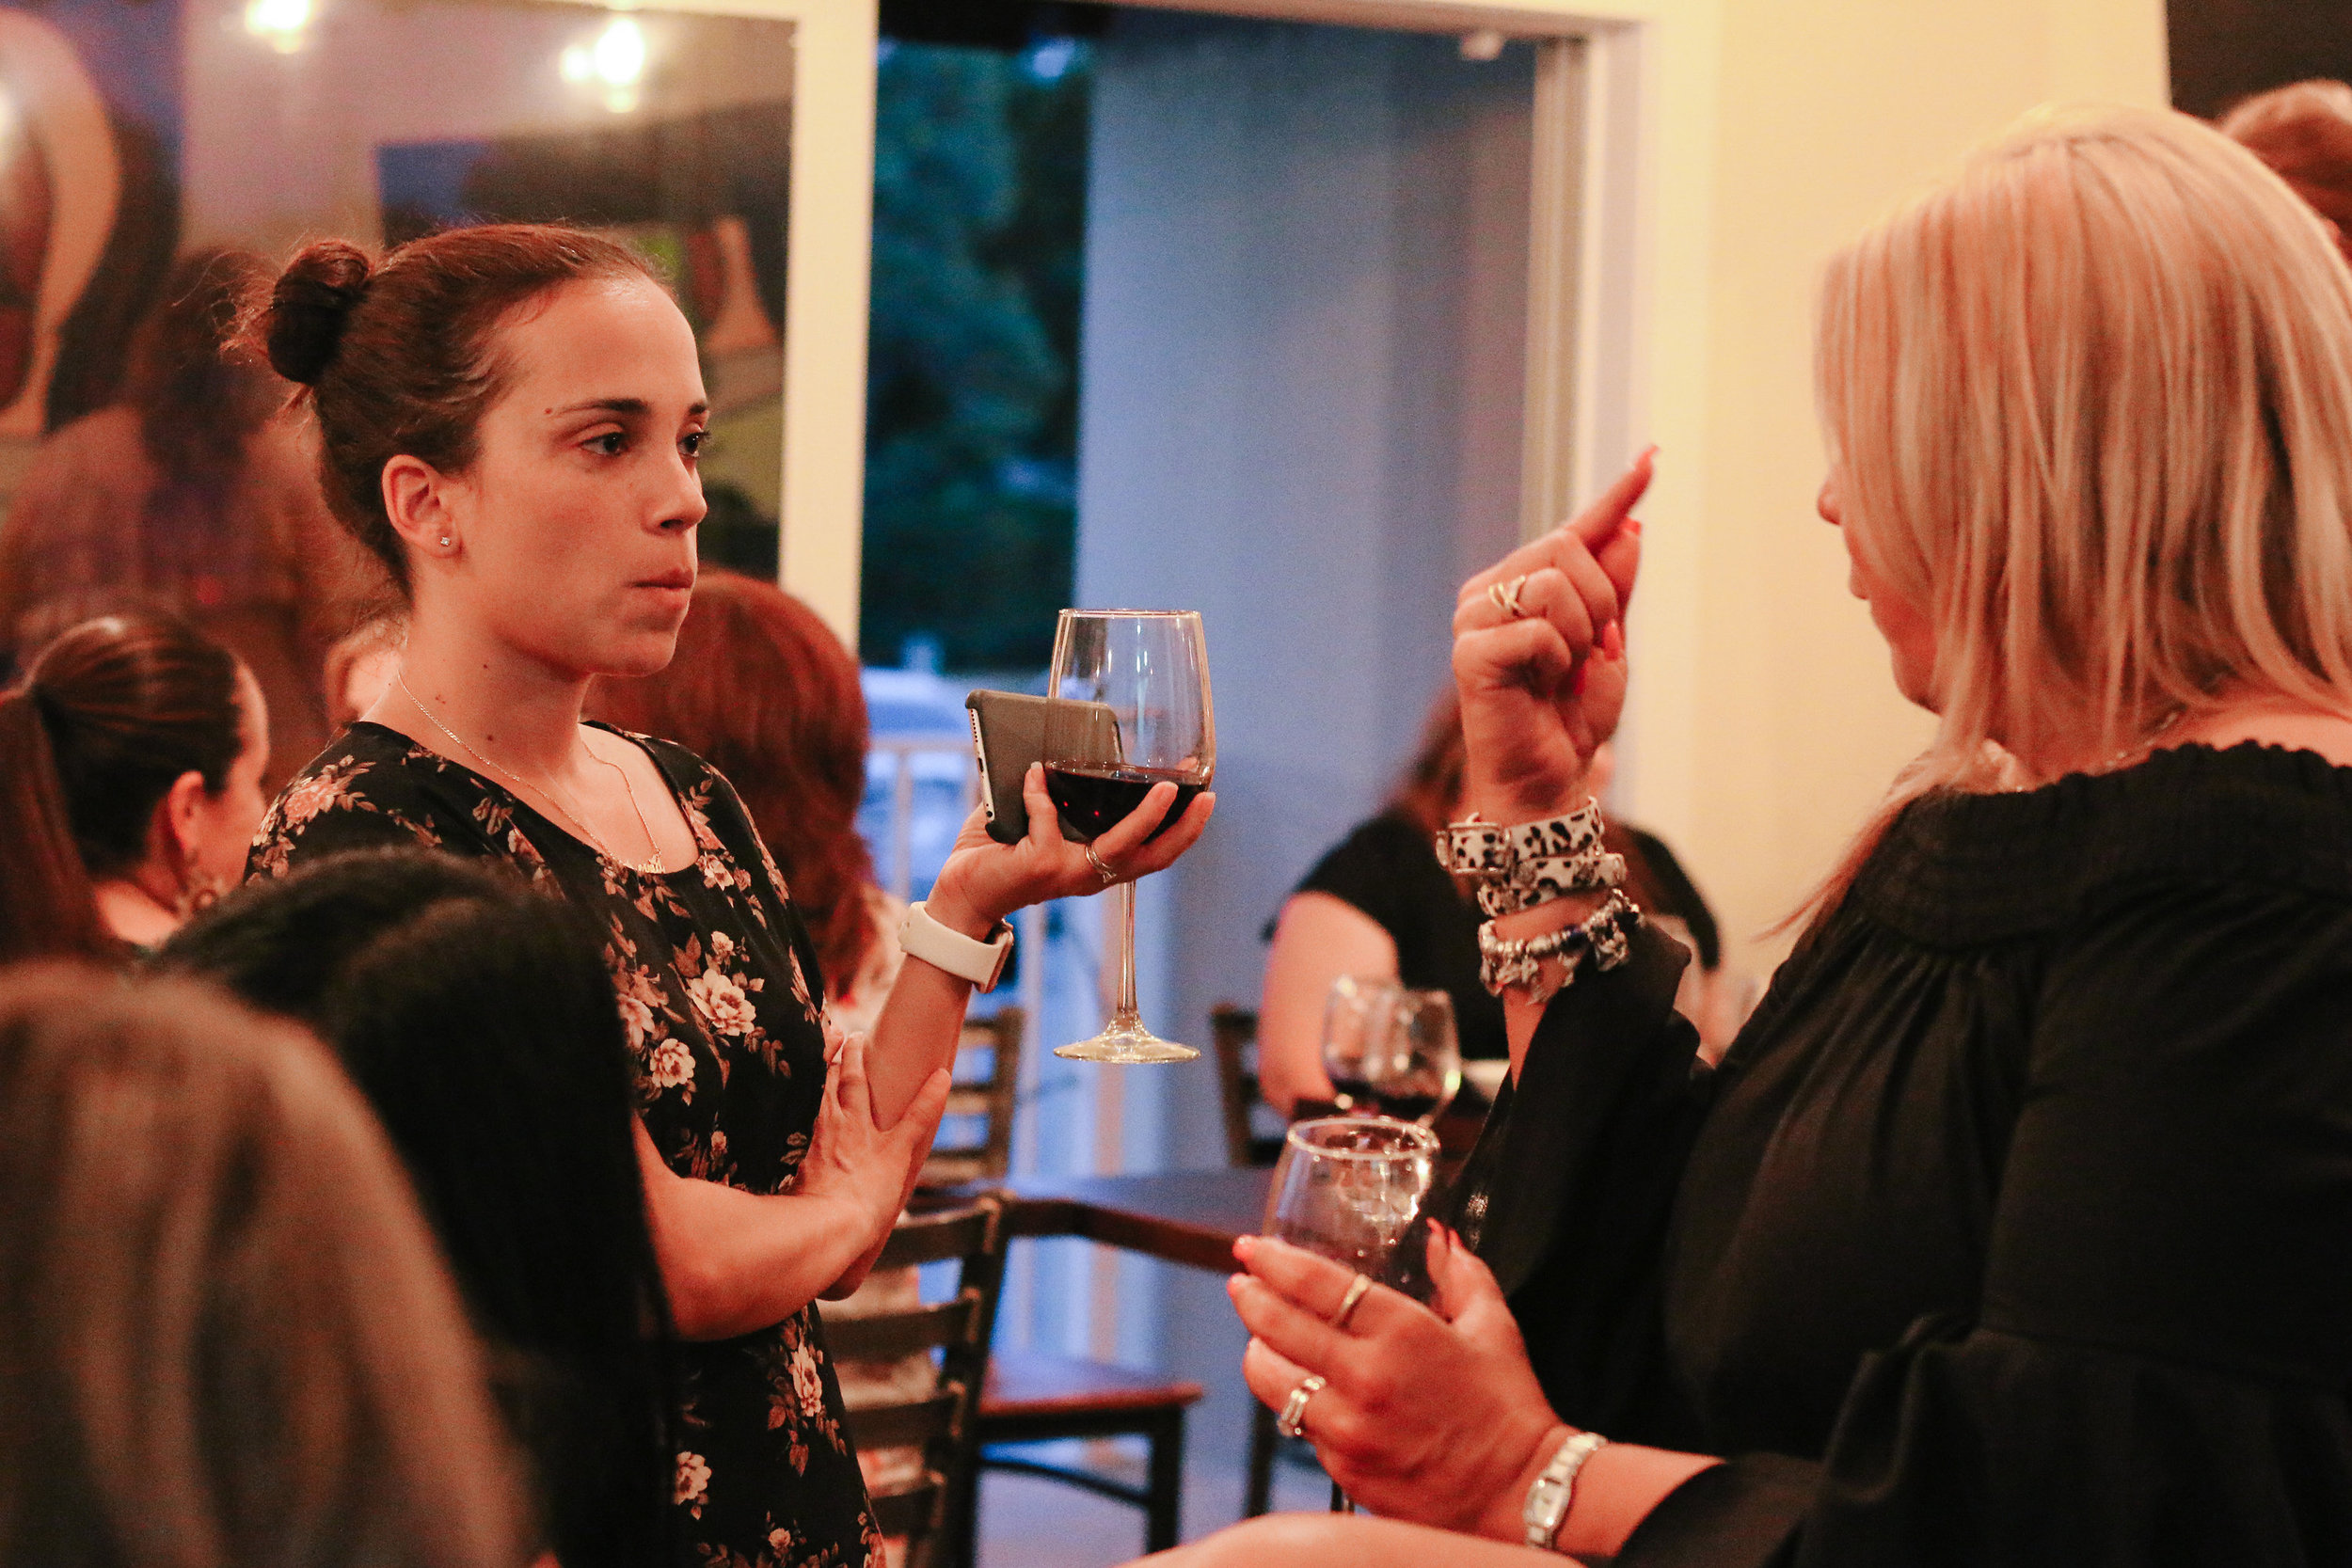 Women Who Wine_Uncorked Conversations_Off The Mile_Miami Wine Events_Wine Tasting Miami_64.jpg